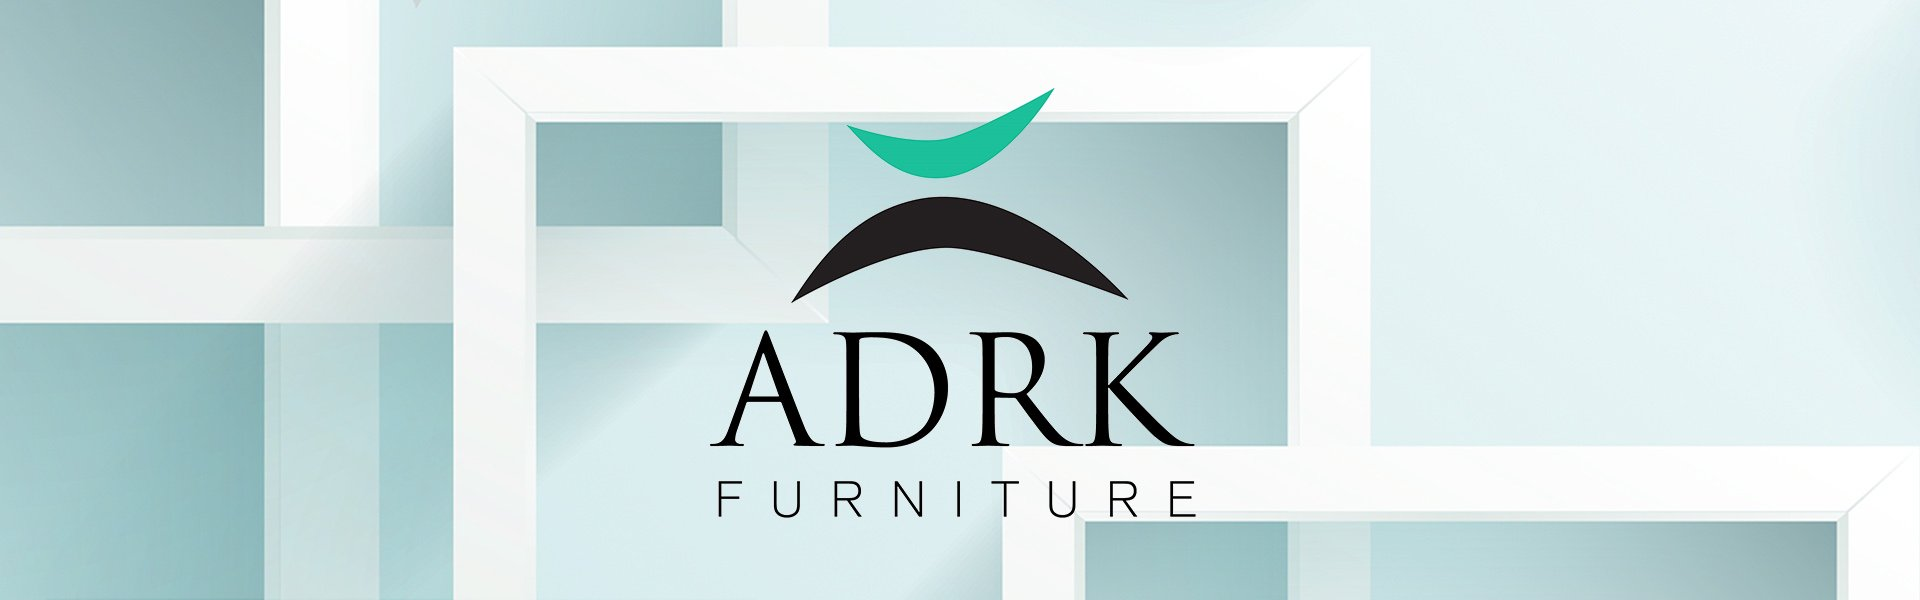 Kapp ADRK Furniture Spectra, must                             ADRK Furniture